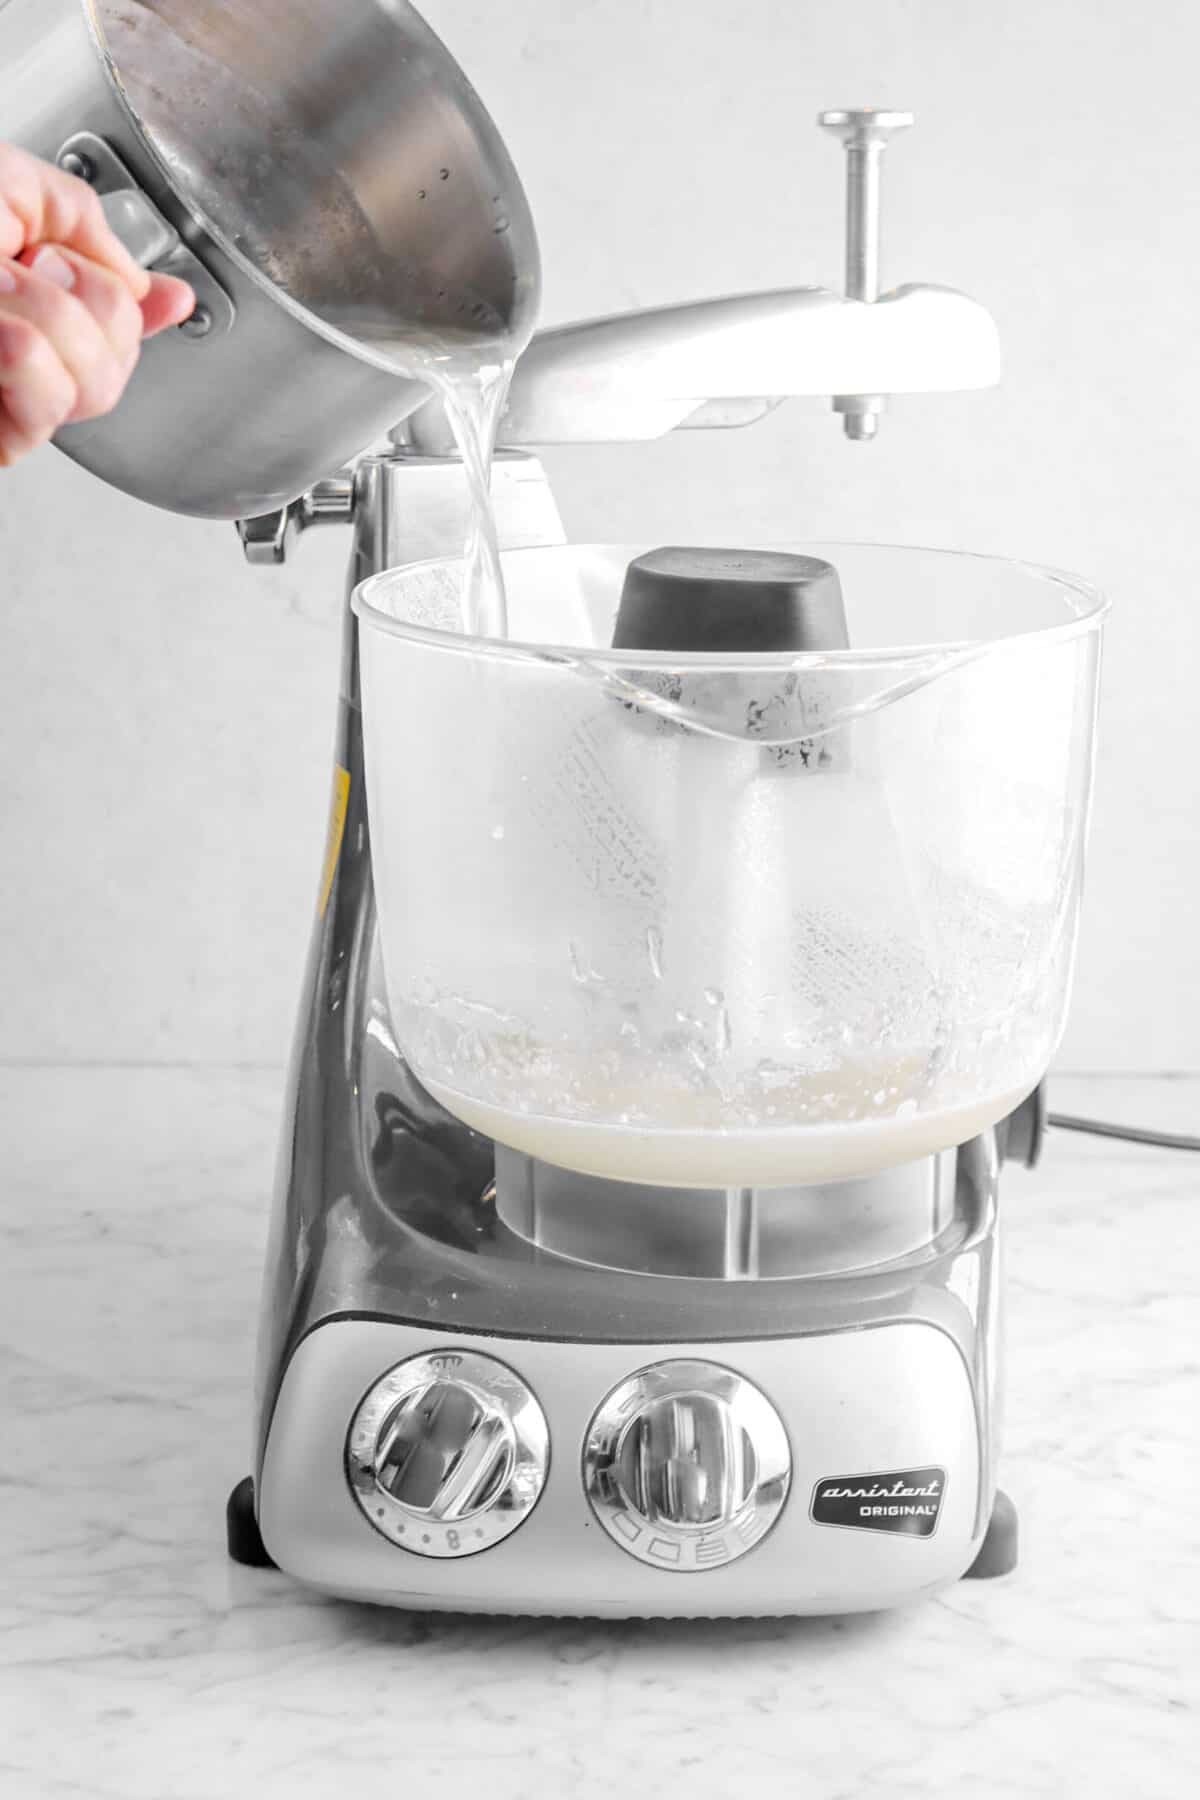 melted sugar mixture being poured into mixer